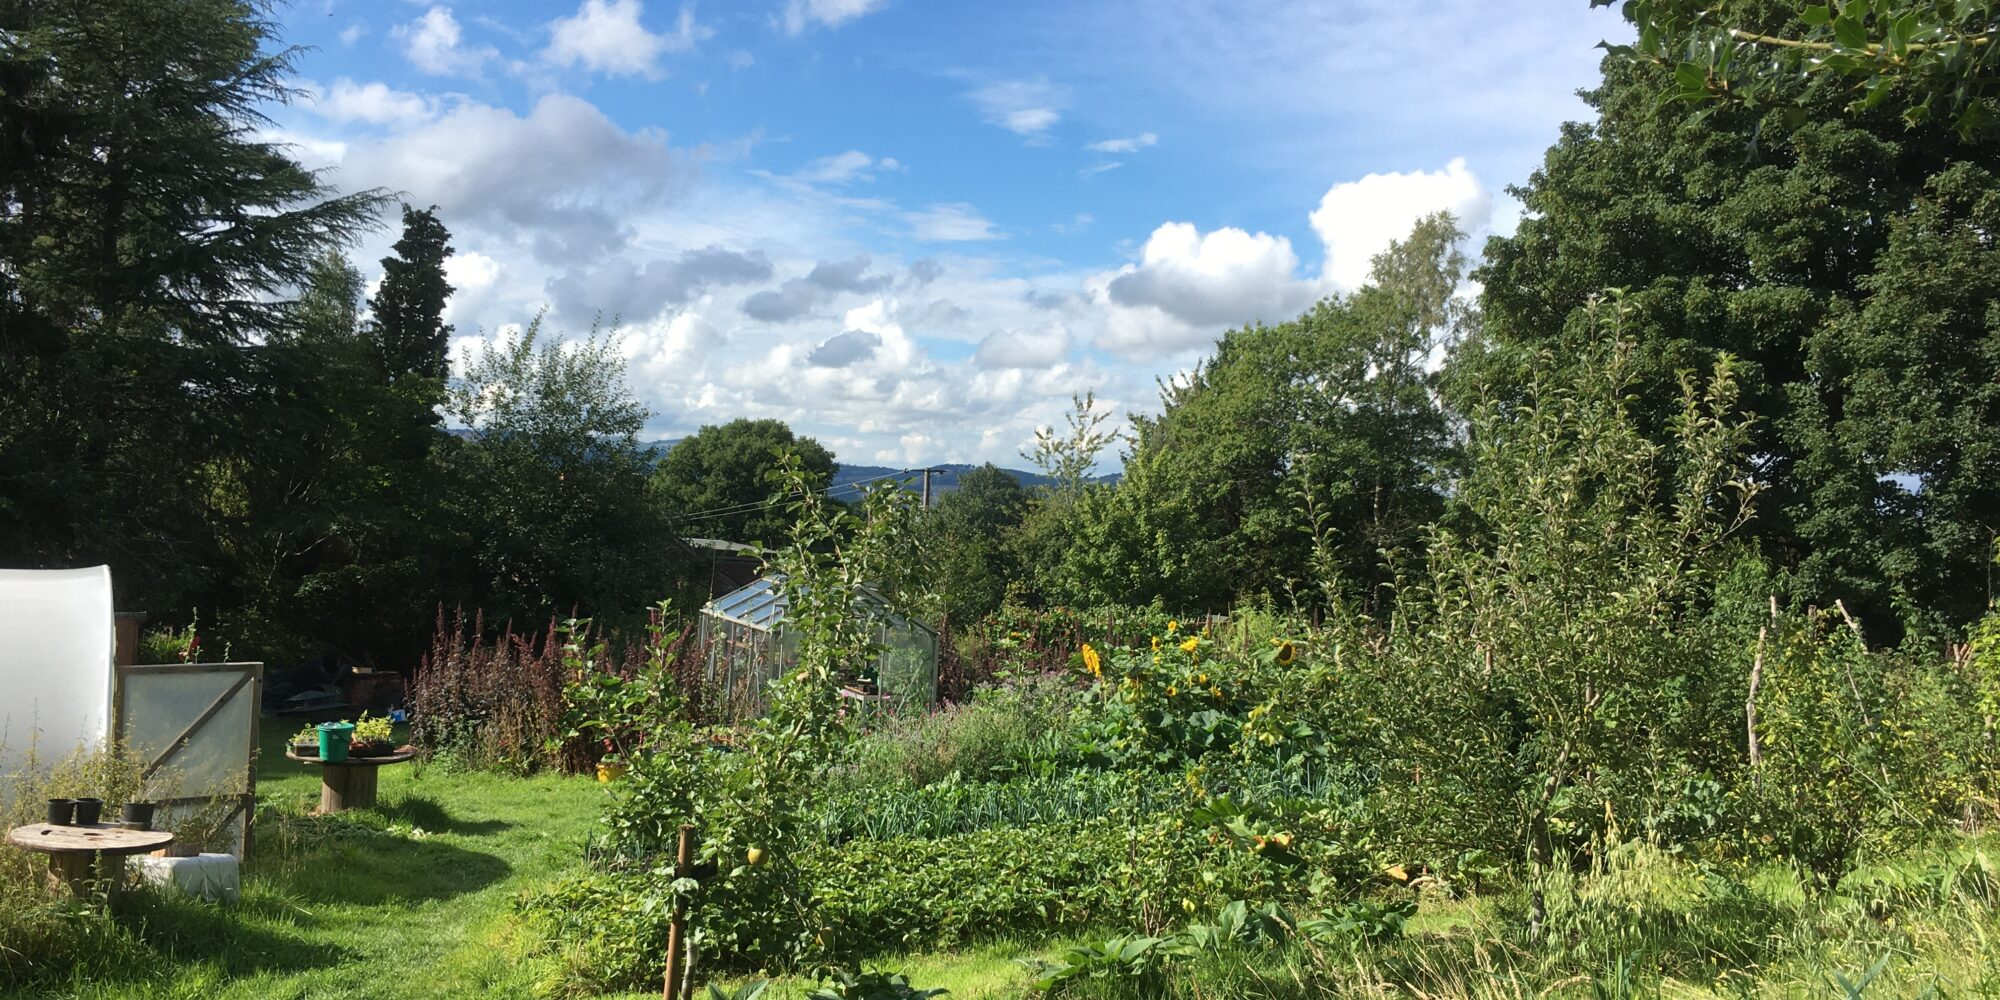 A view of the farm in summer with blue skies, green trees and vegetable patches